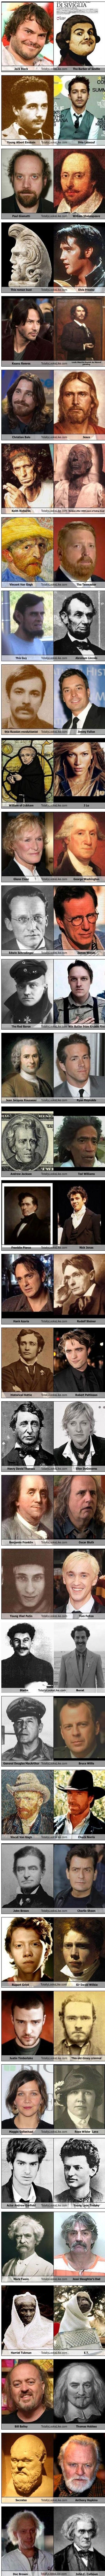 funny-celebrities-historical-people-look-alikes...wow: